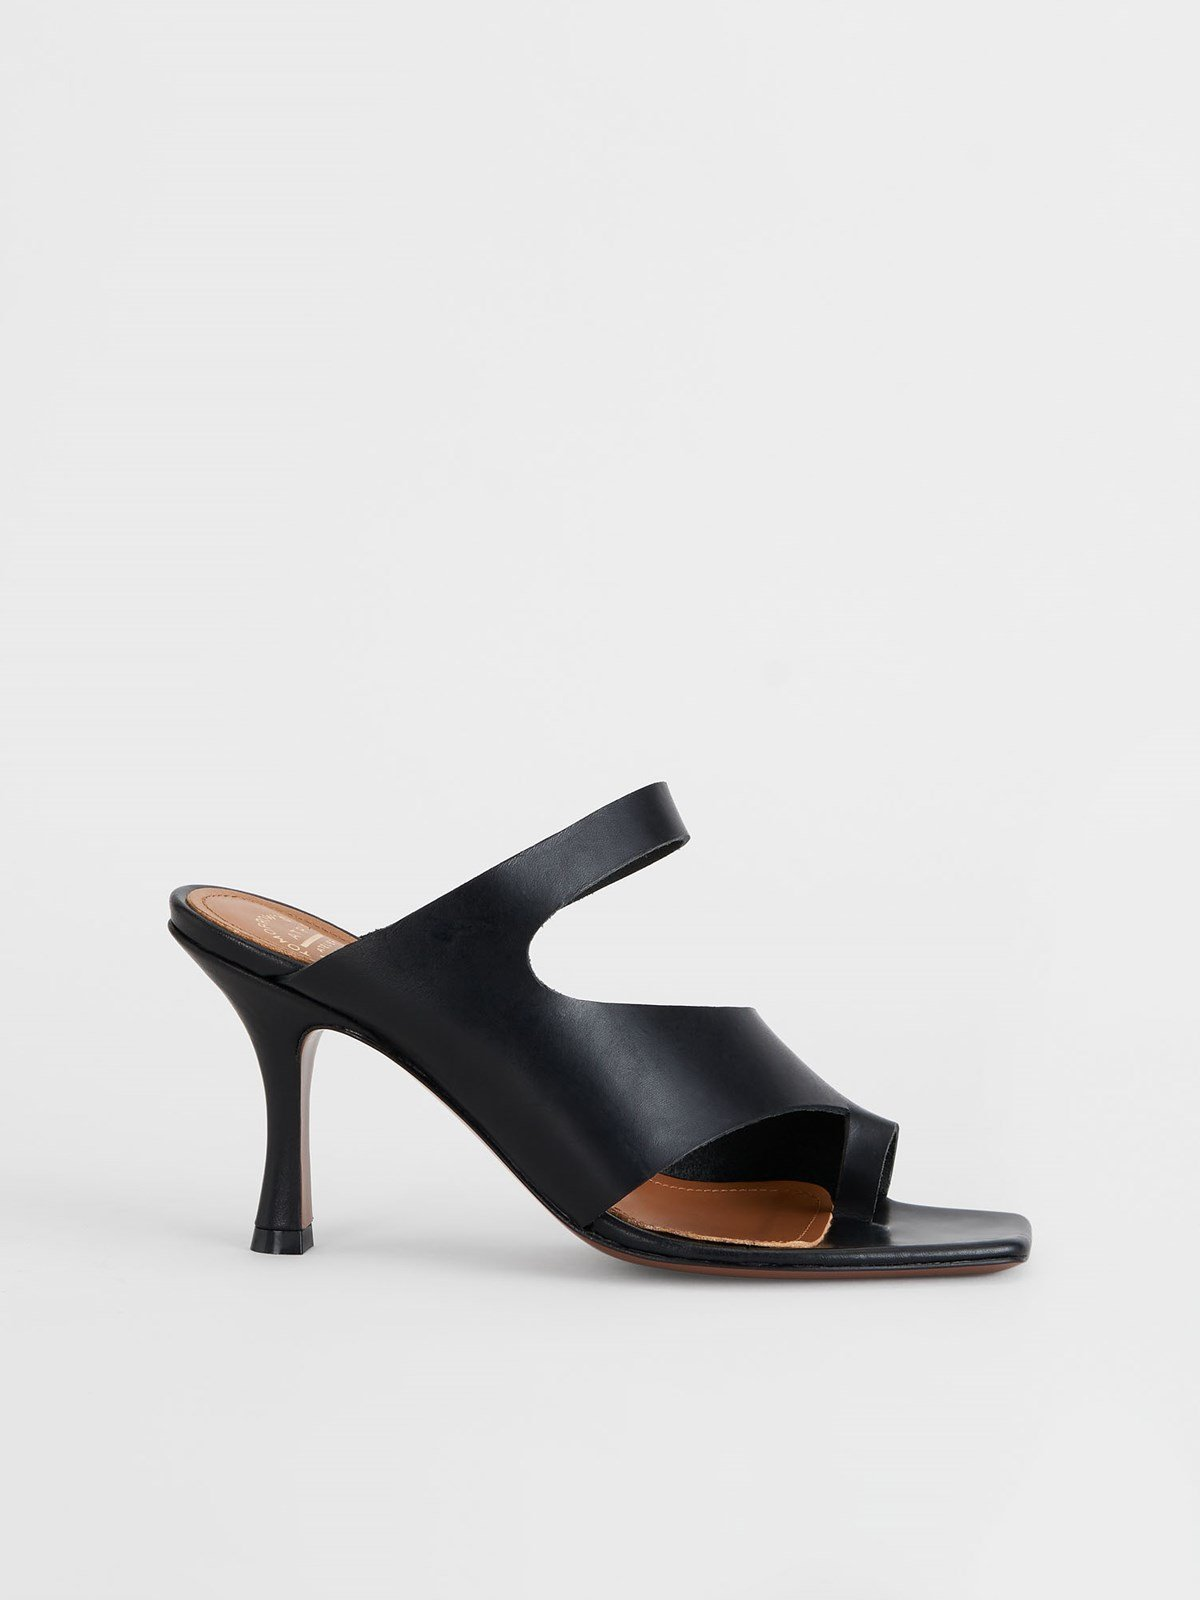 Aradeo Black Cutout heels